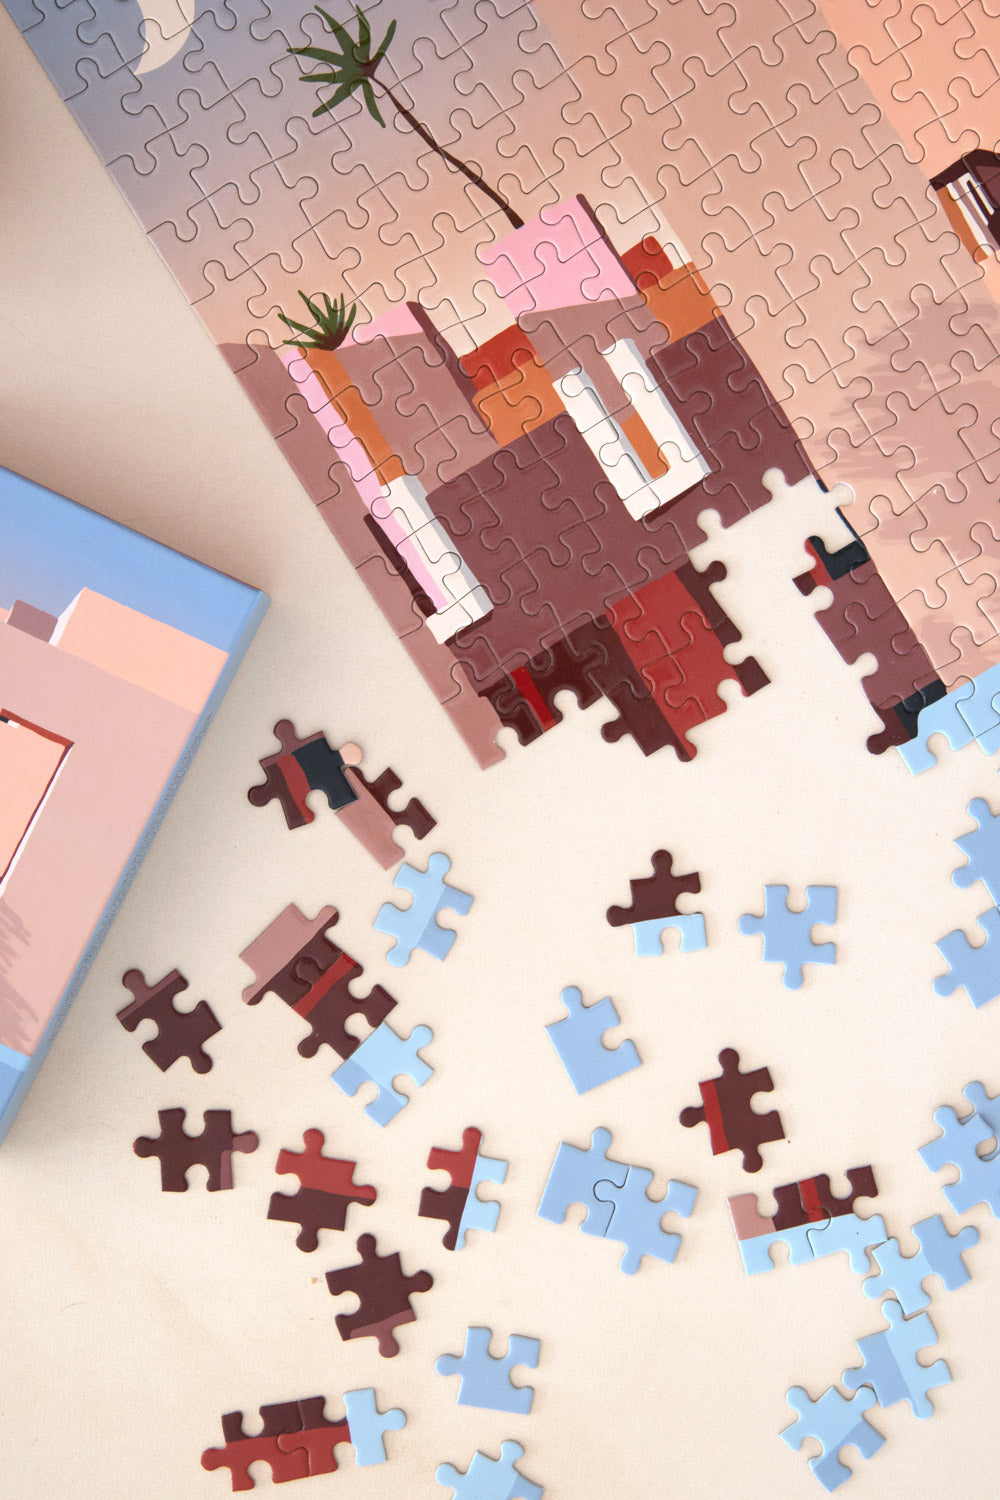 Slowdown Studio La Muralla Roja puzzle Deigned by Charlie Bennell - Vert & Vogue